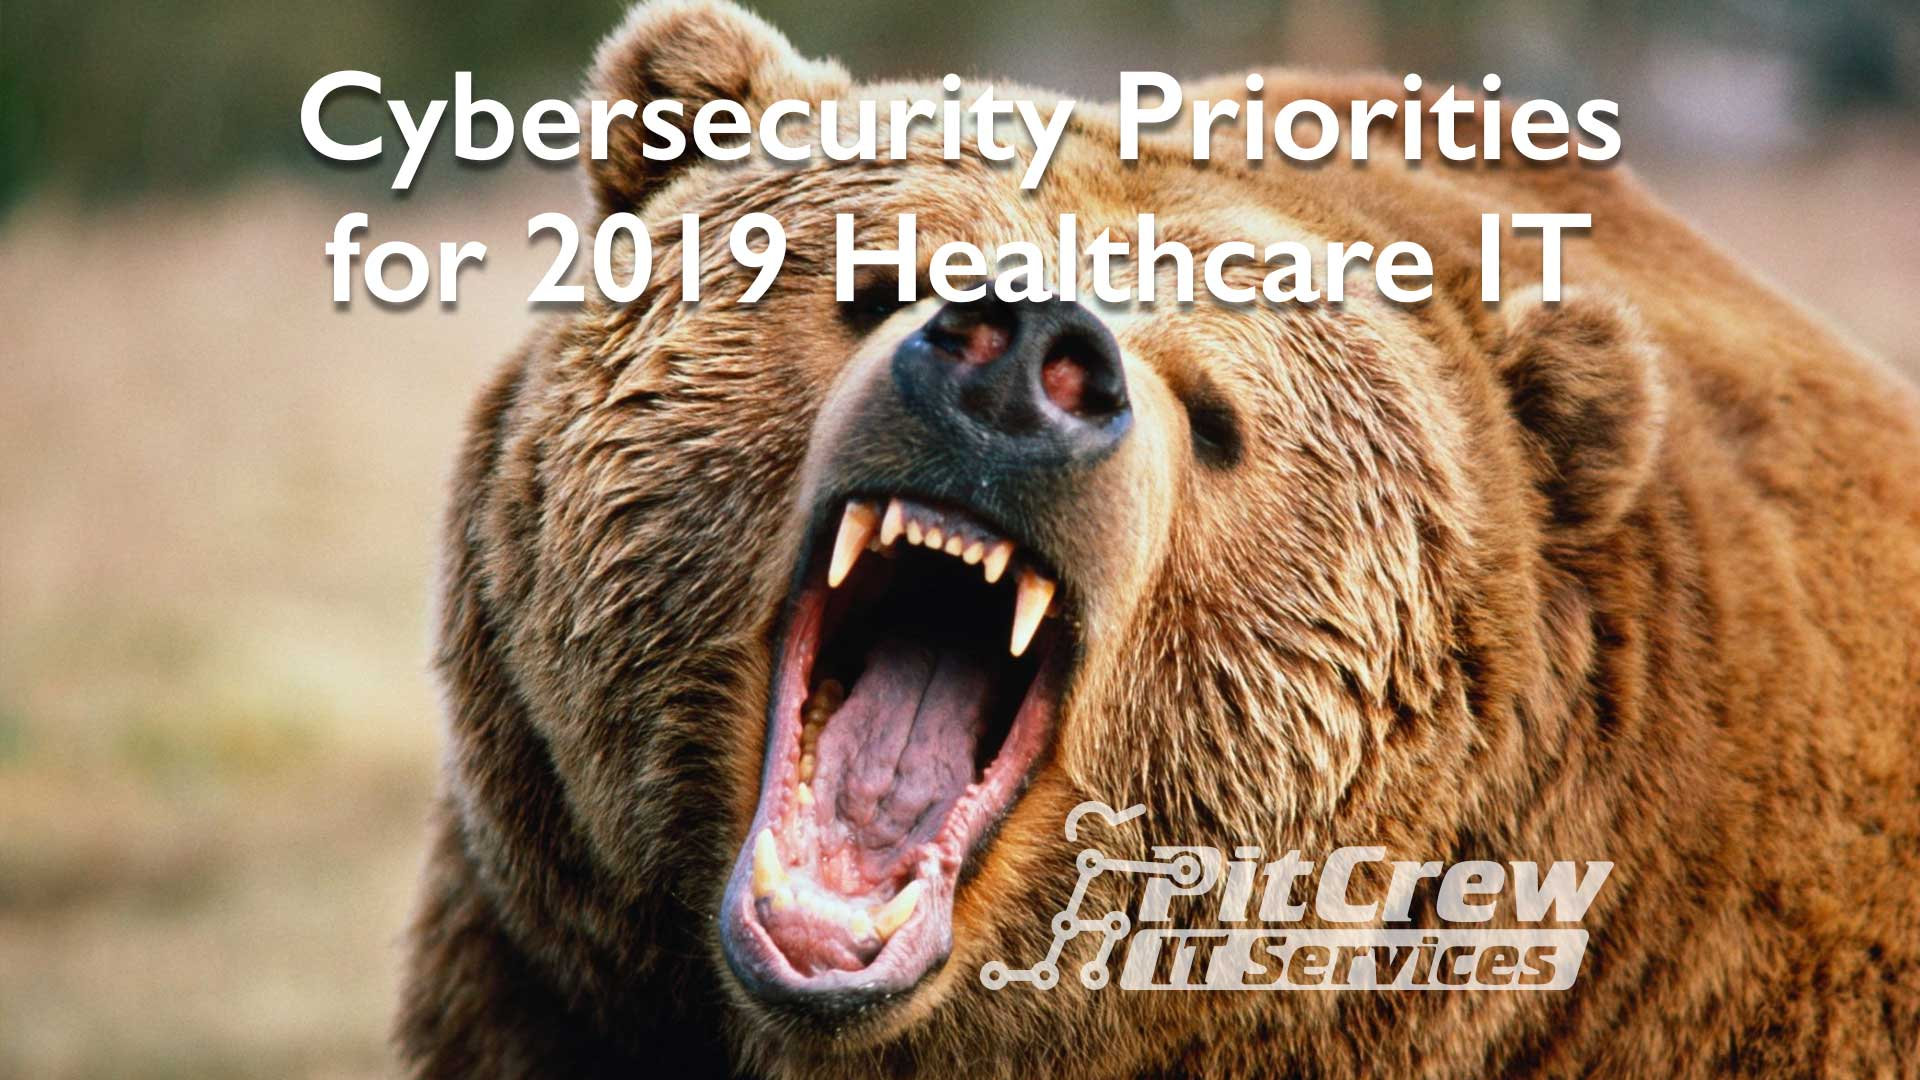 Cybersecurity Priorities for 2019 Healthcare IT